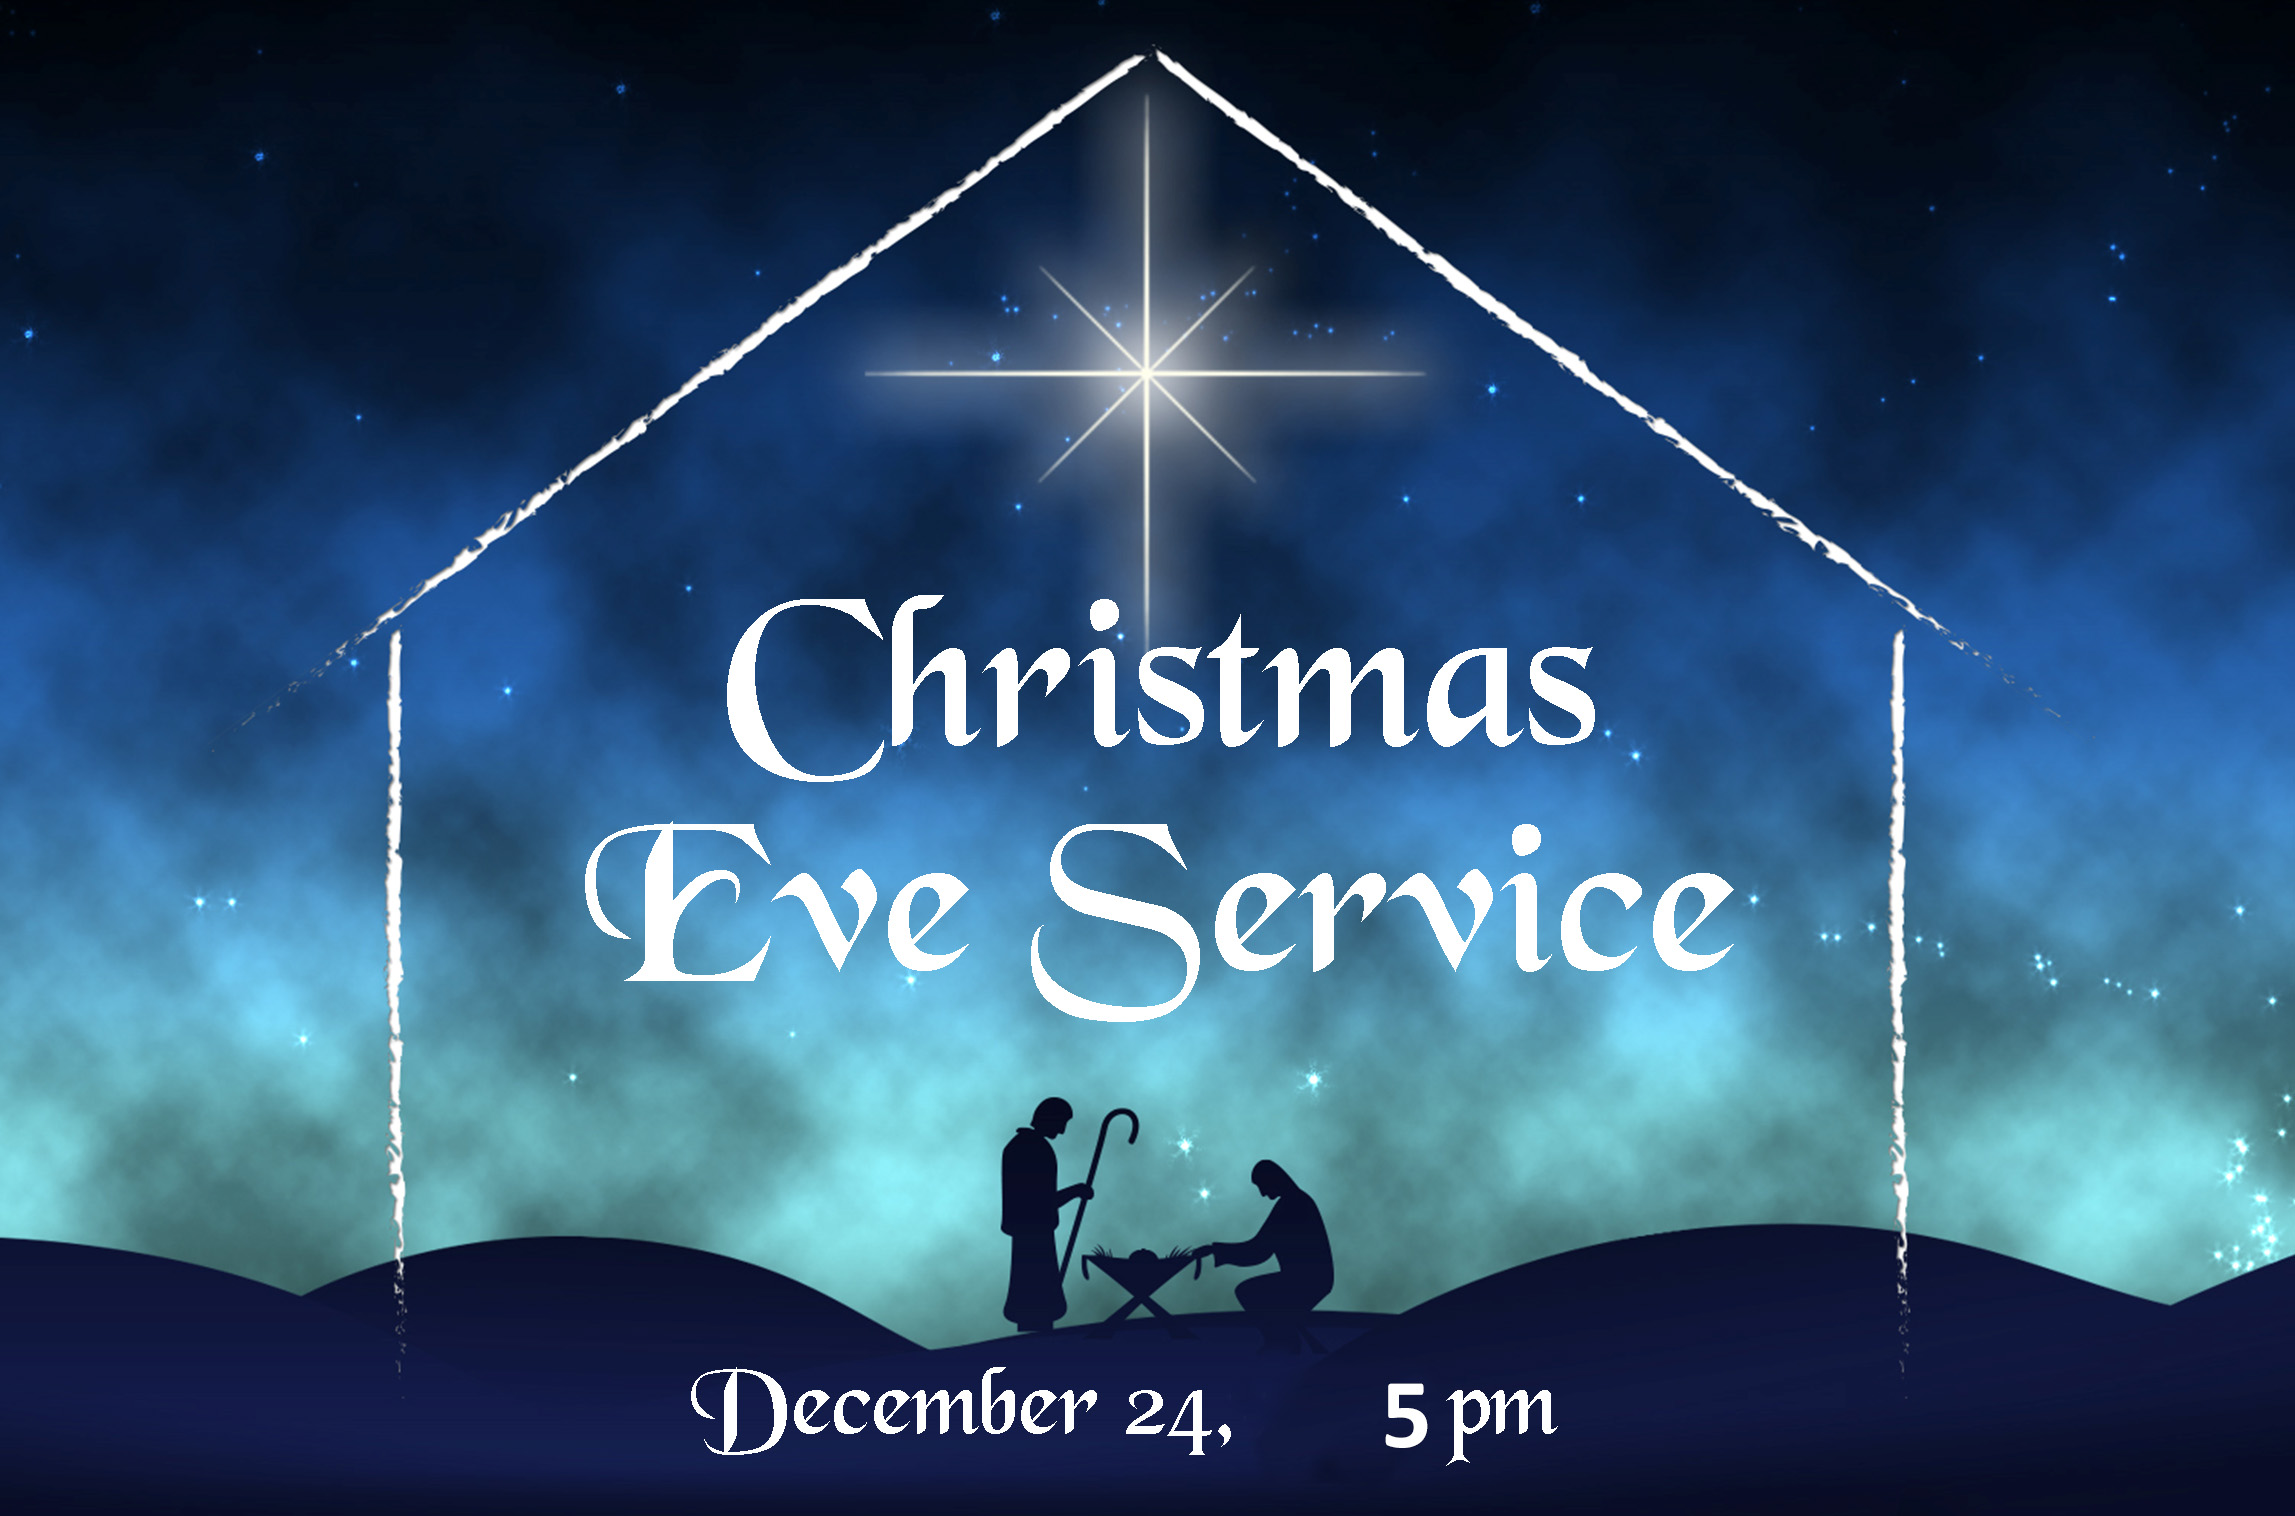 christmas eve service 5pm rbc